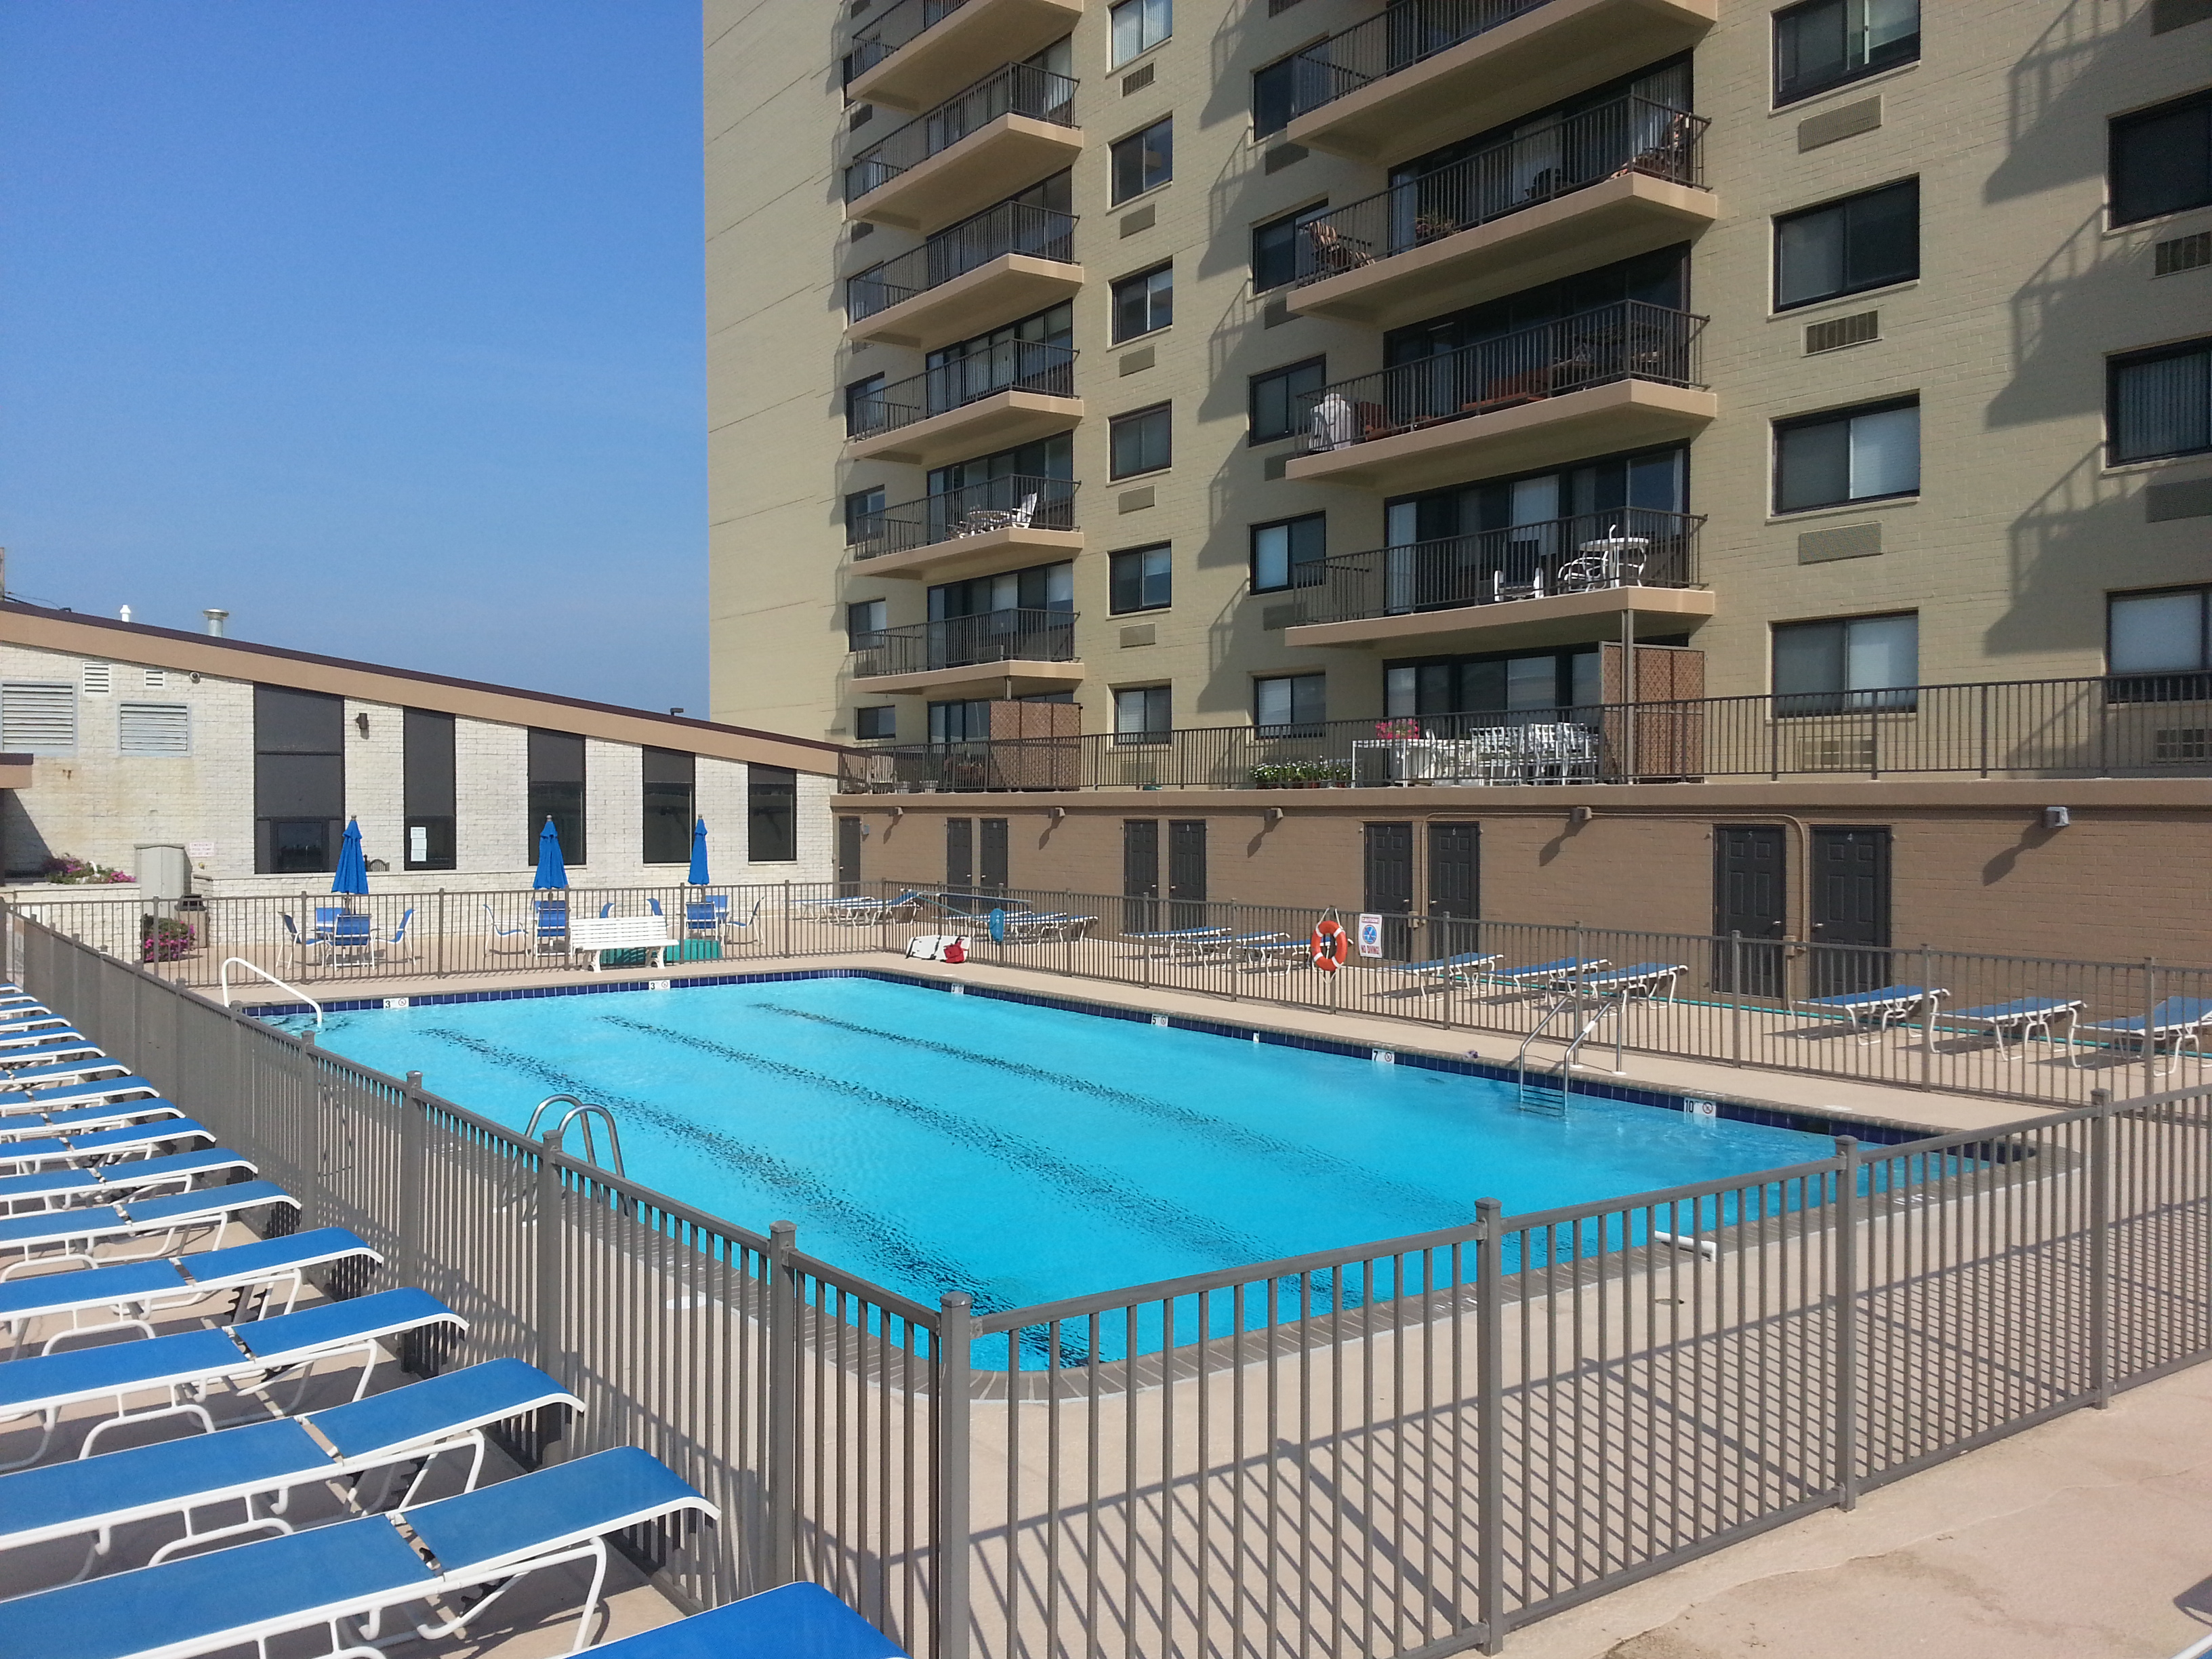 Between the two towers is an outdoor pool,pictured here, overlooking the ocean.